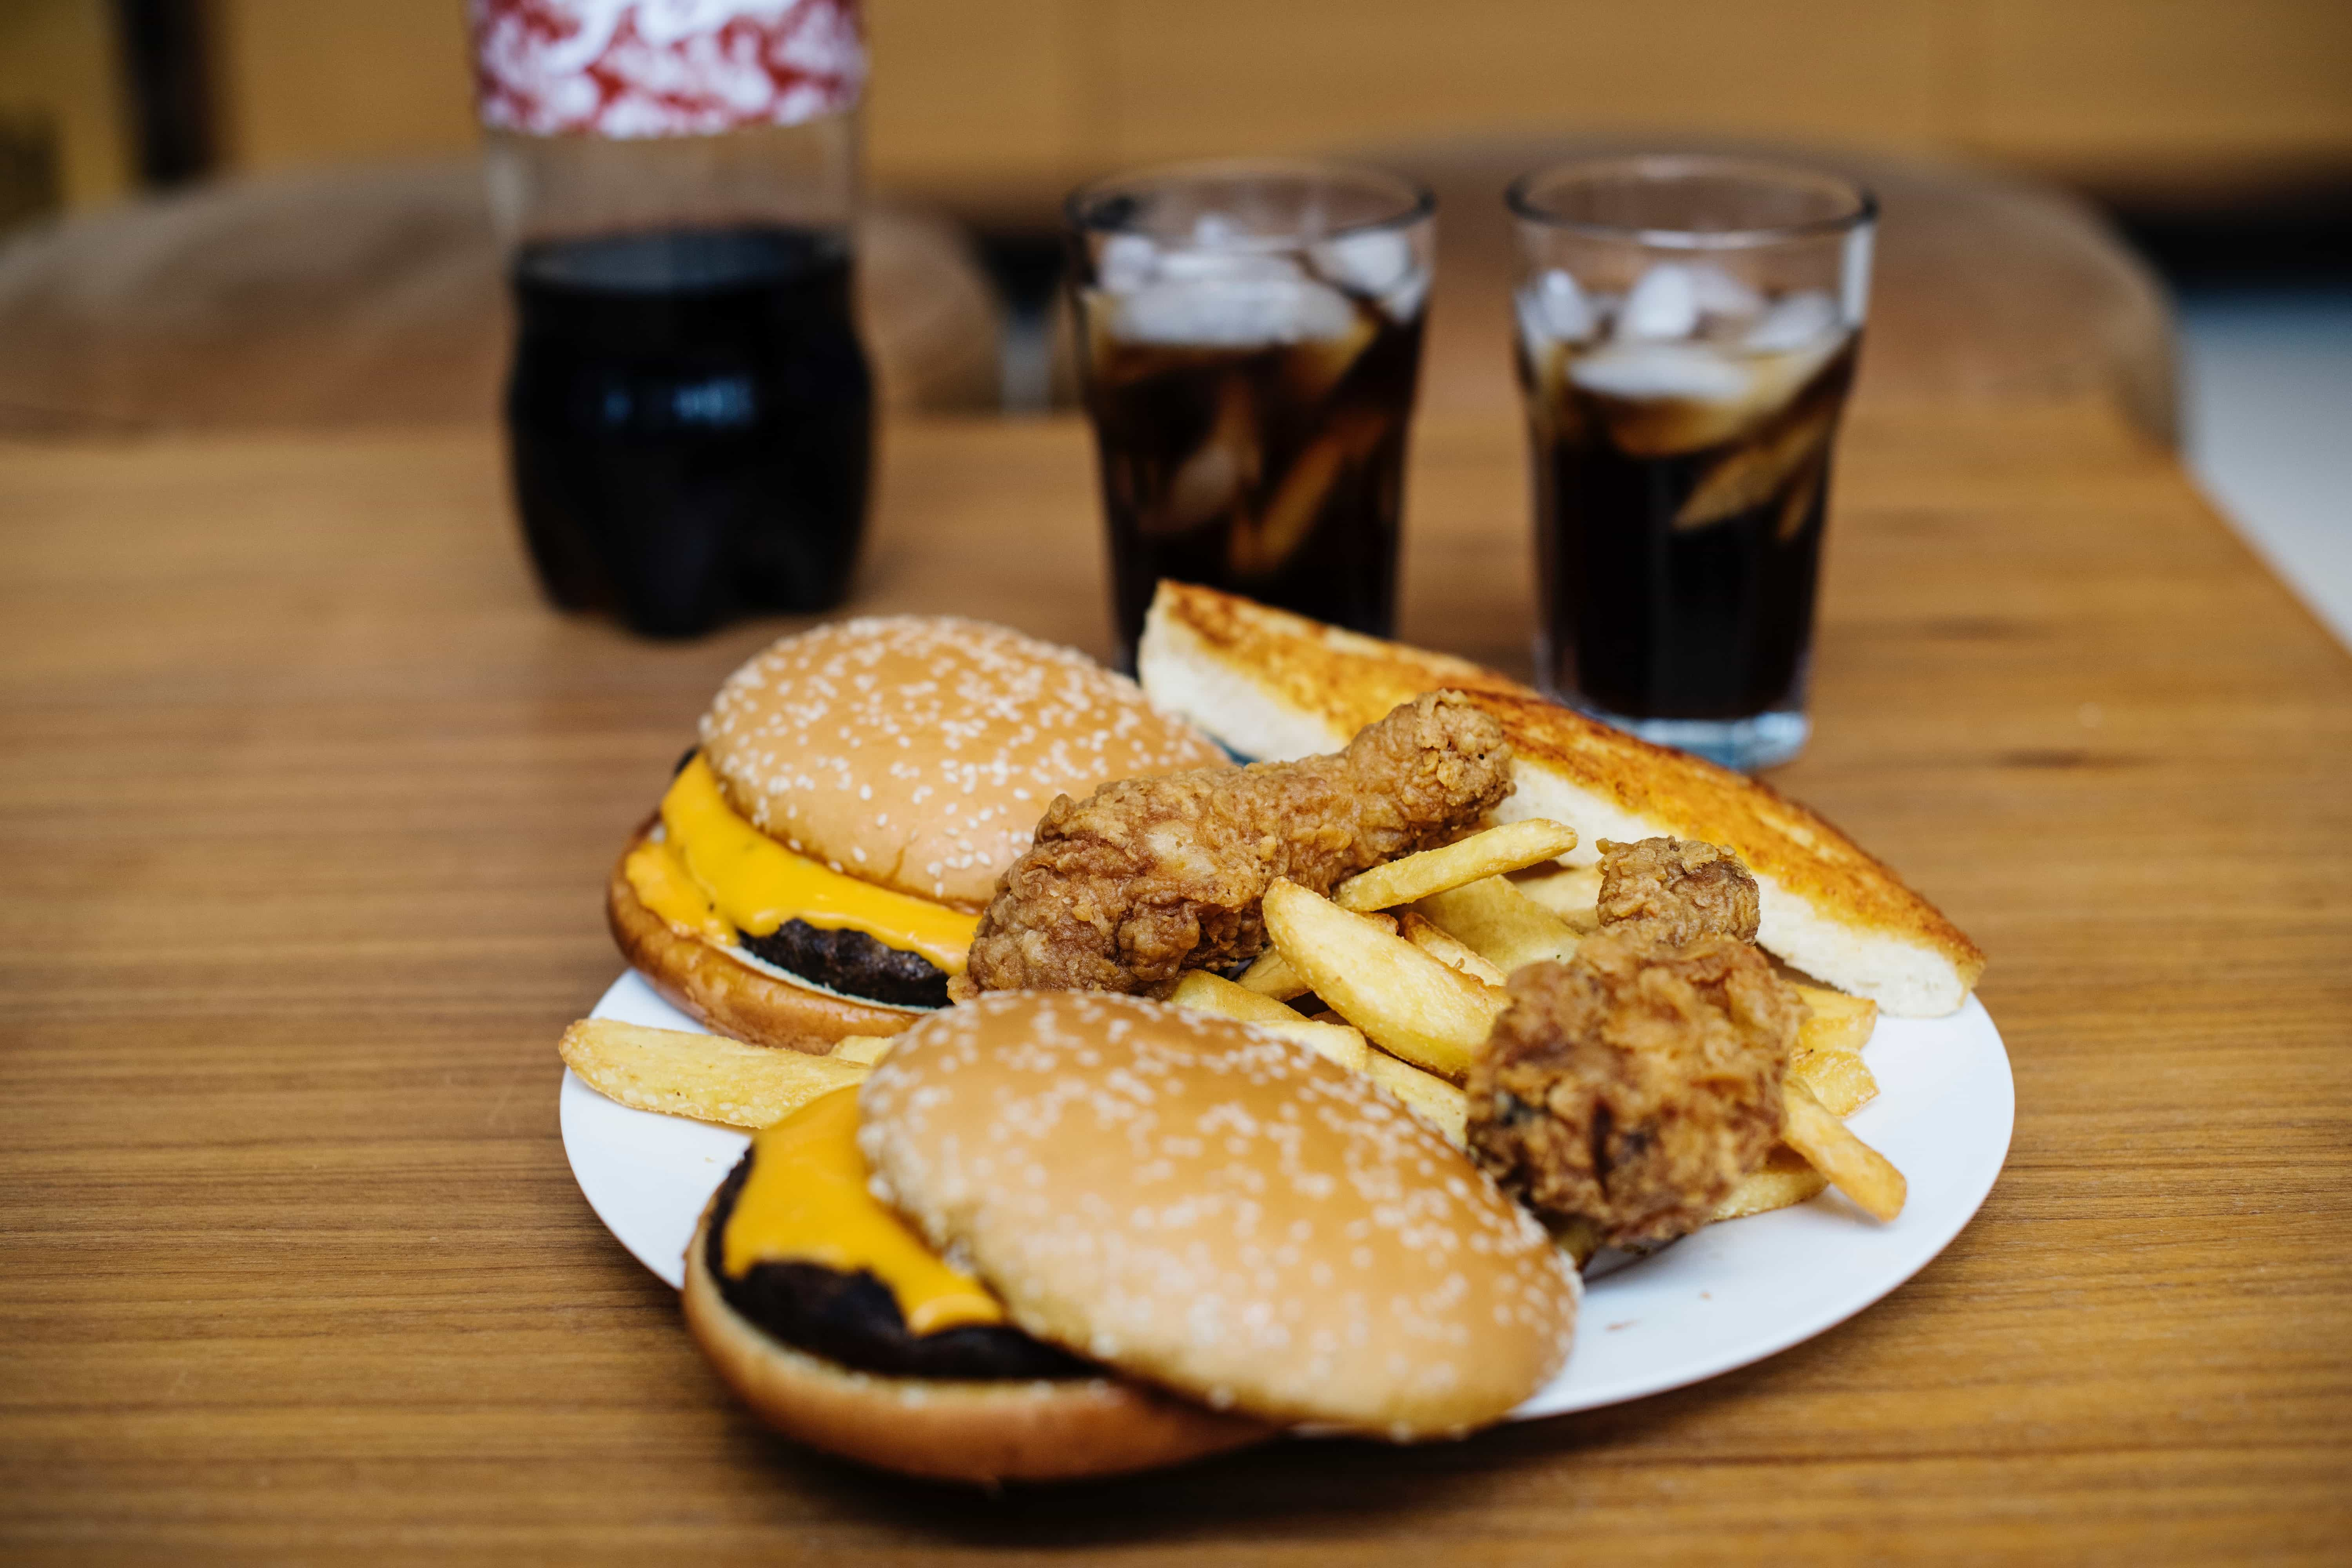 beef-burger-bread-breaded-chicken-1376964